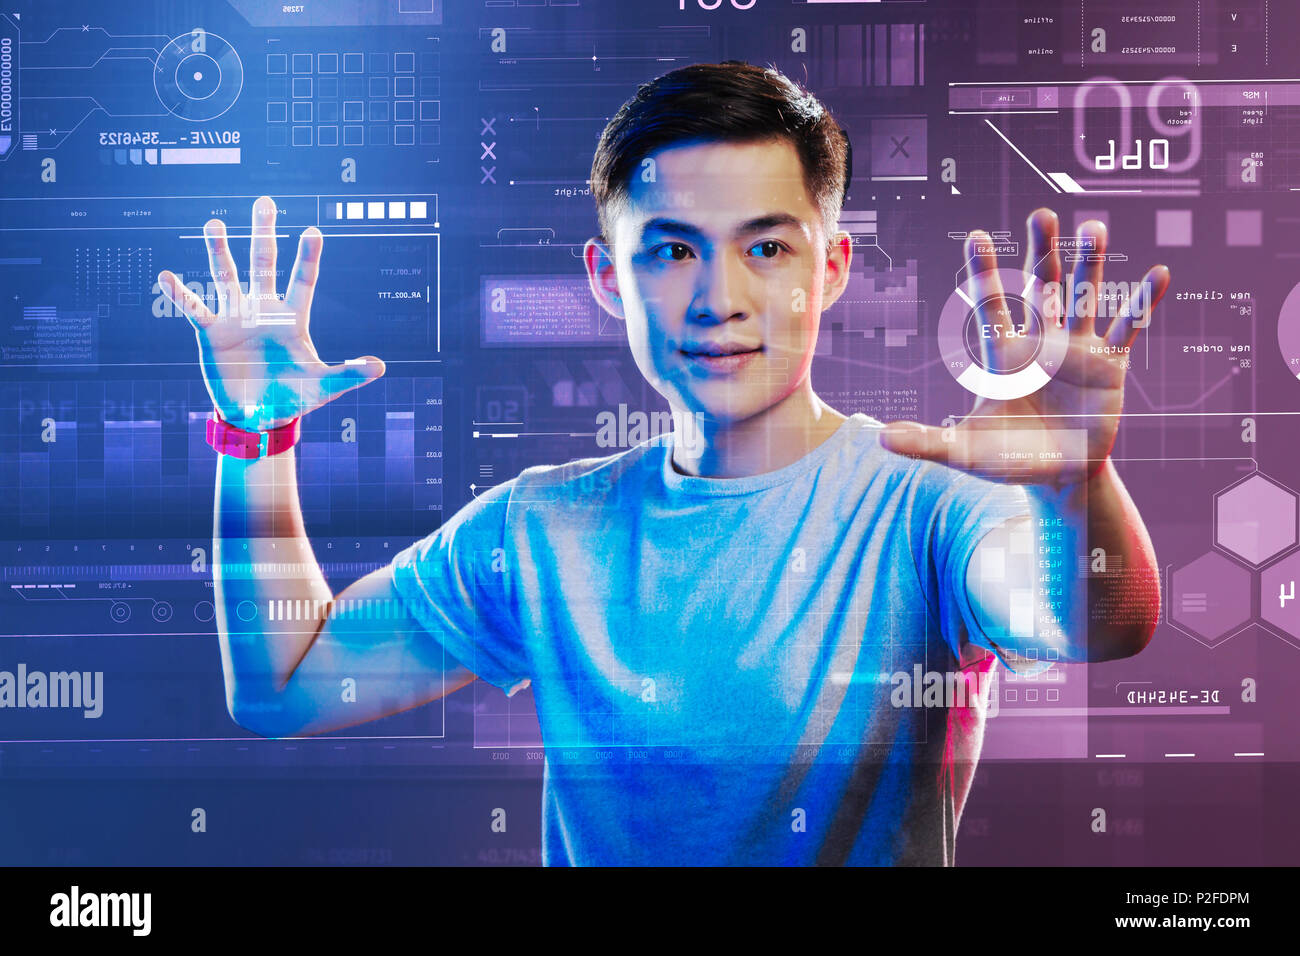 Professional web developer working with holographic images and looking impressed - Stock Image